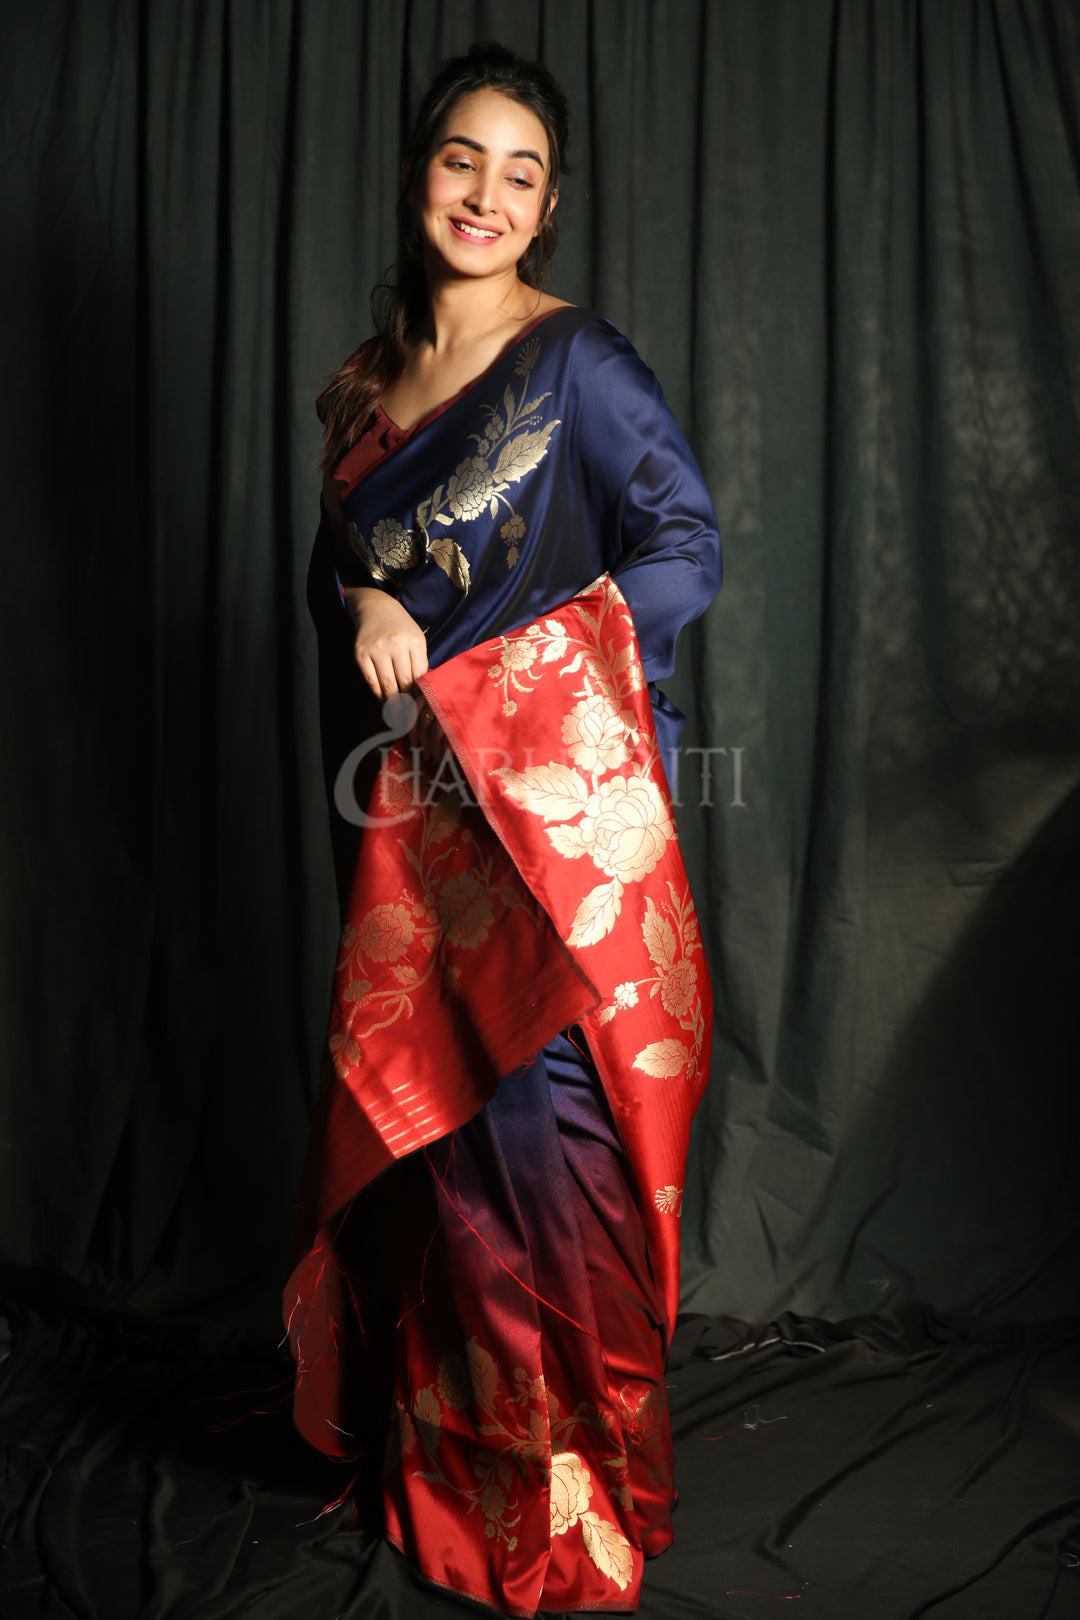 NAVY BLUE AND RED DUPION SILK SAREE WITH GOLDEN FLORAL BORDER